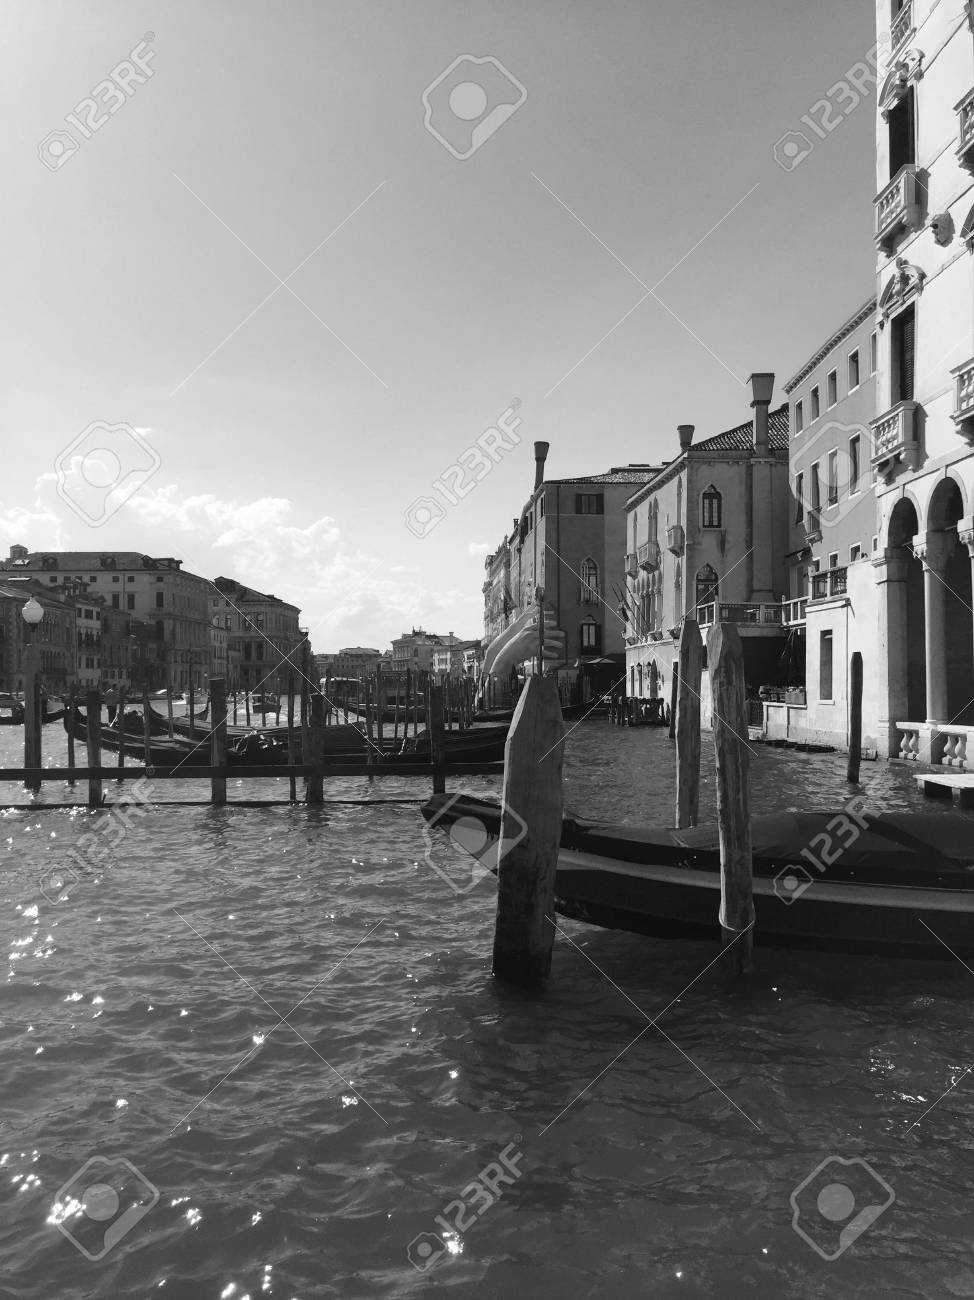 Black And White Postcard From >> Black And White Postcard From Venice Venice Italy Stock Photo